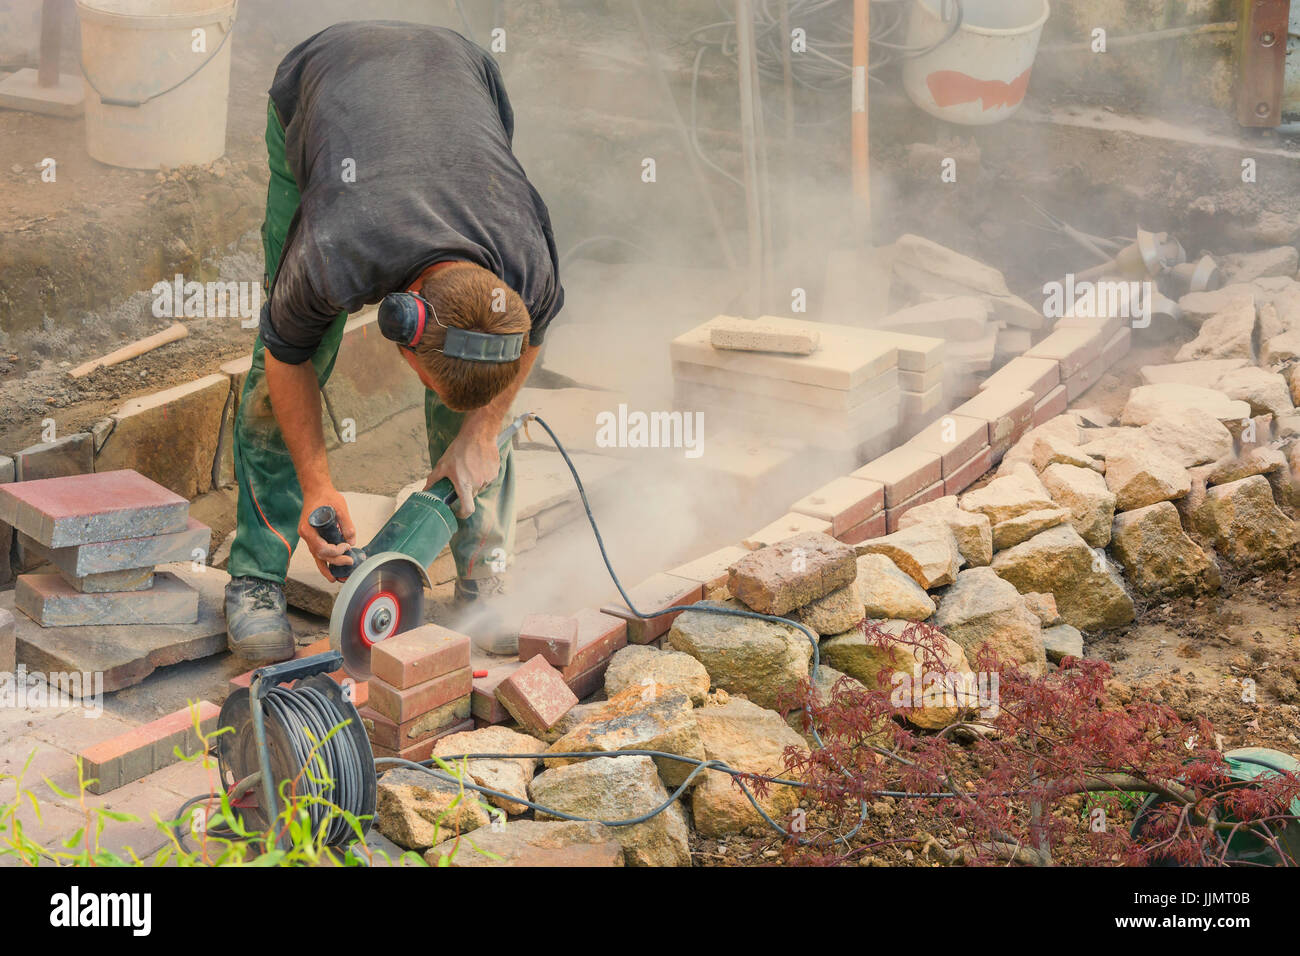 Man cutting stone slabs, concrete slab with an electric grinder - Stock Image